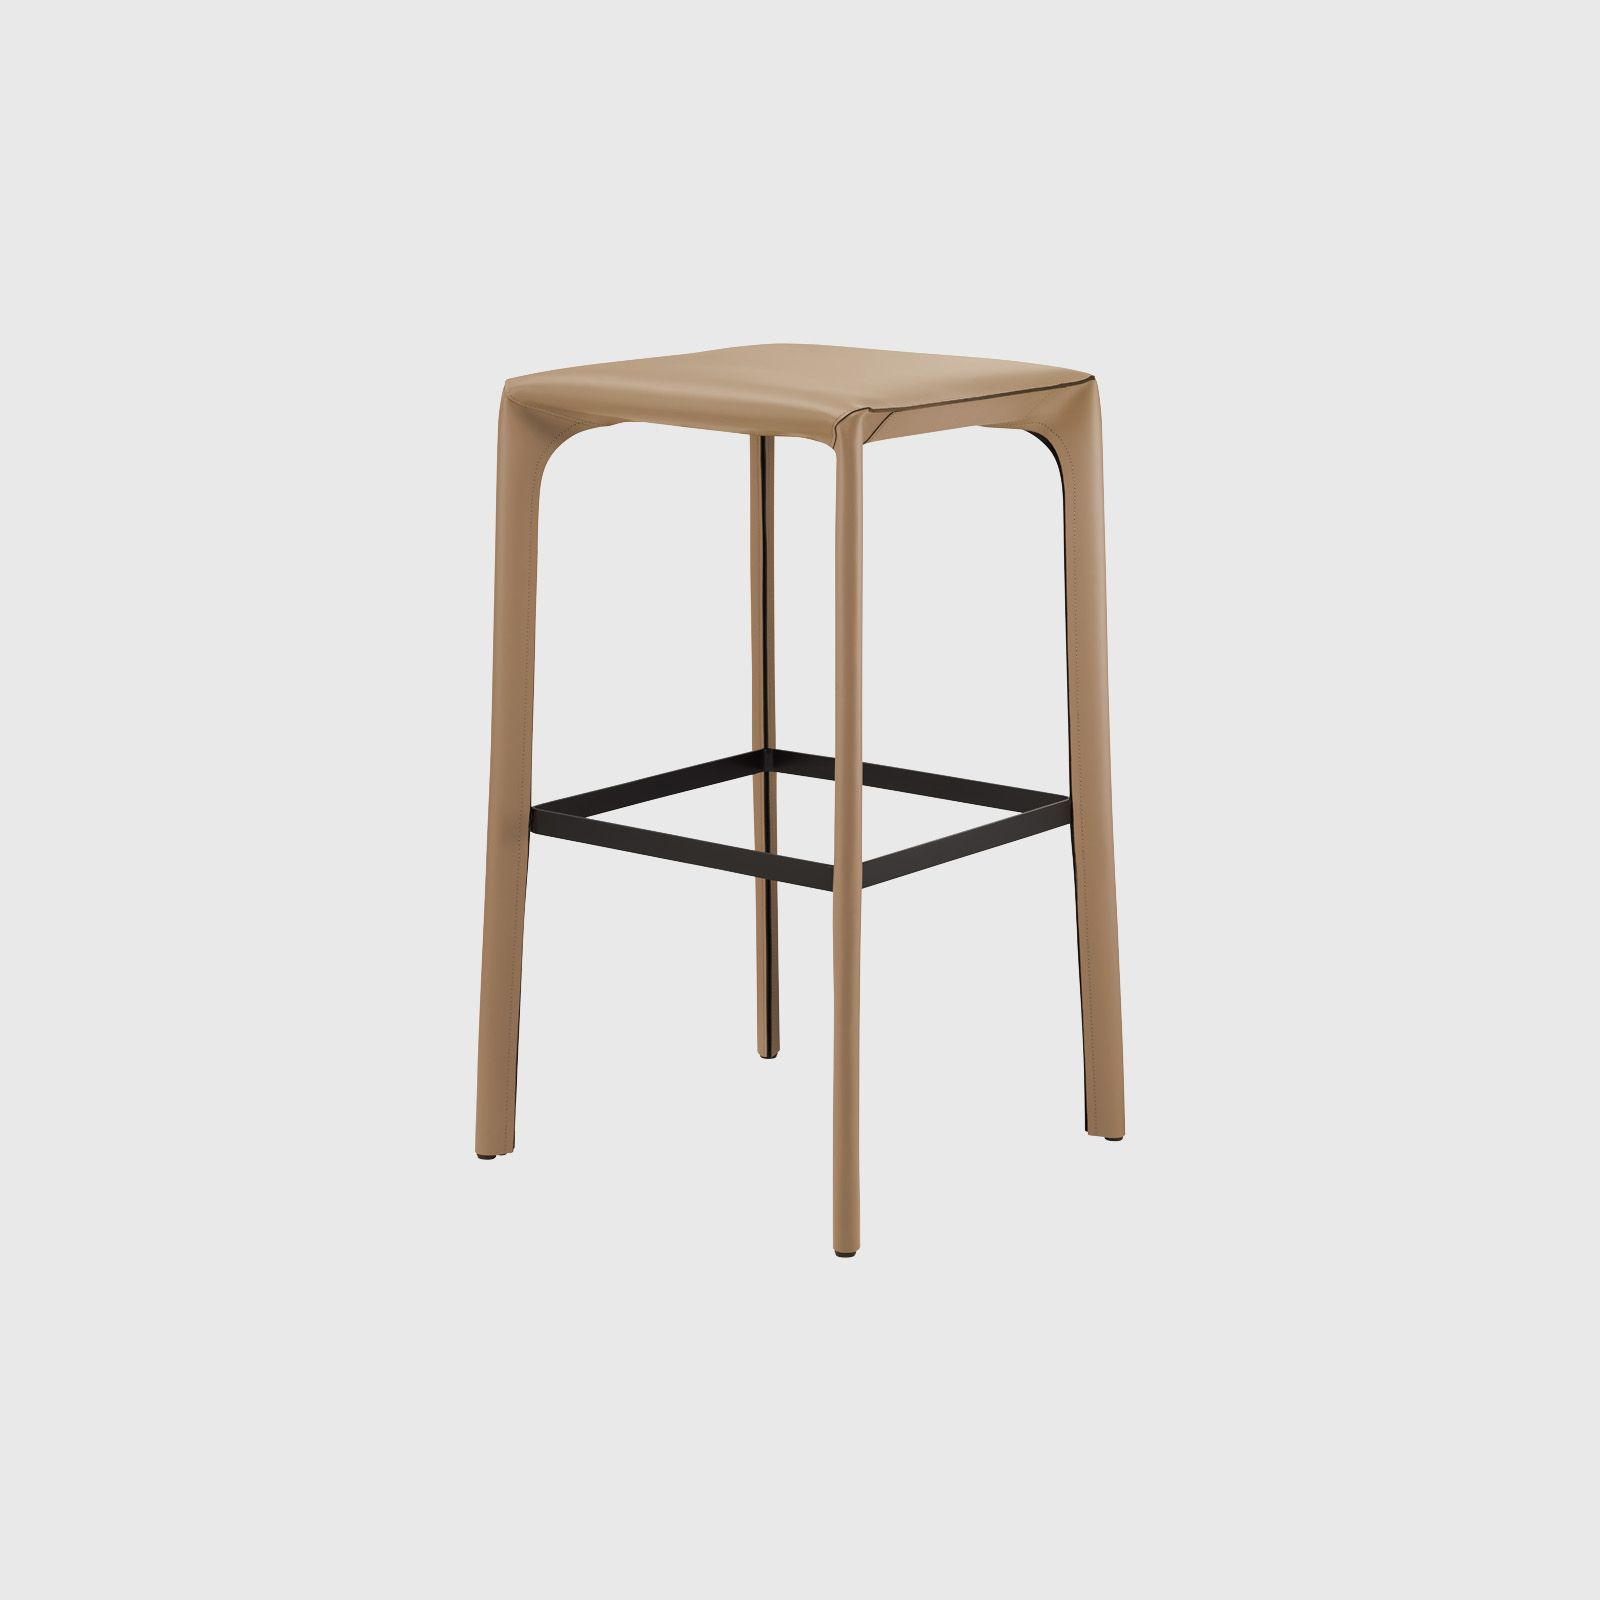 For Saddle Chair Barstool Without Back In Paco Leather Sand By Walter Knoll